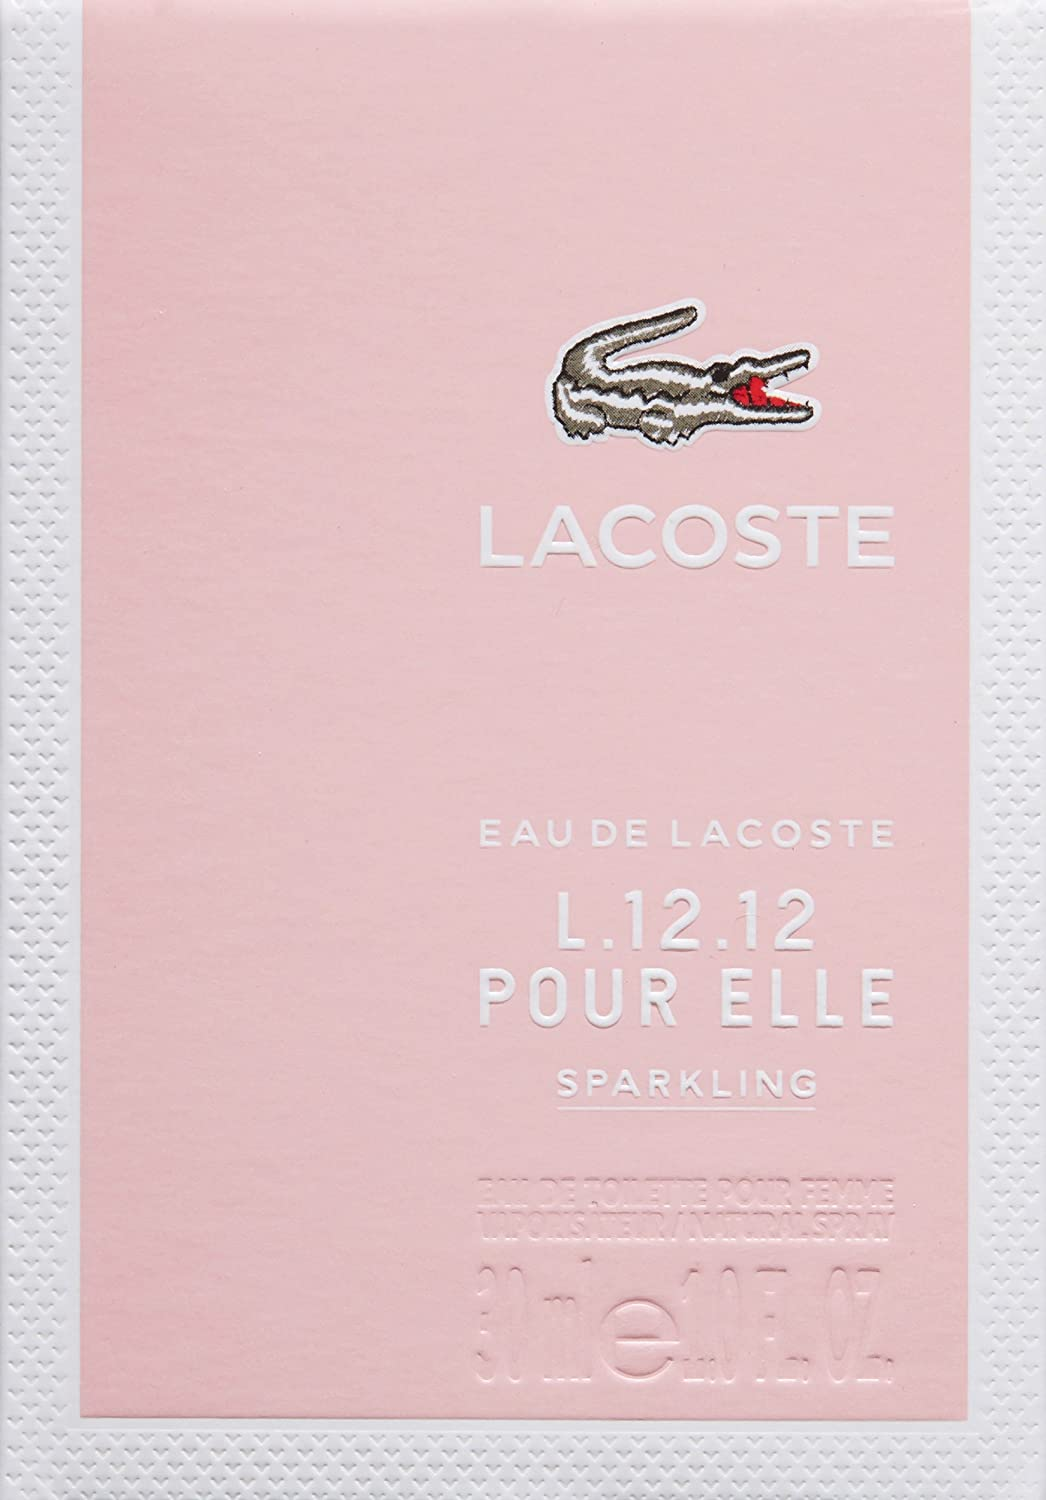 Amazon.com: Lacoste L.12.12 Pour Elle Eau de Toilette Spray, Sparkling, 1.6 fl. oz.: Lacoste: Luxury Beauty